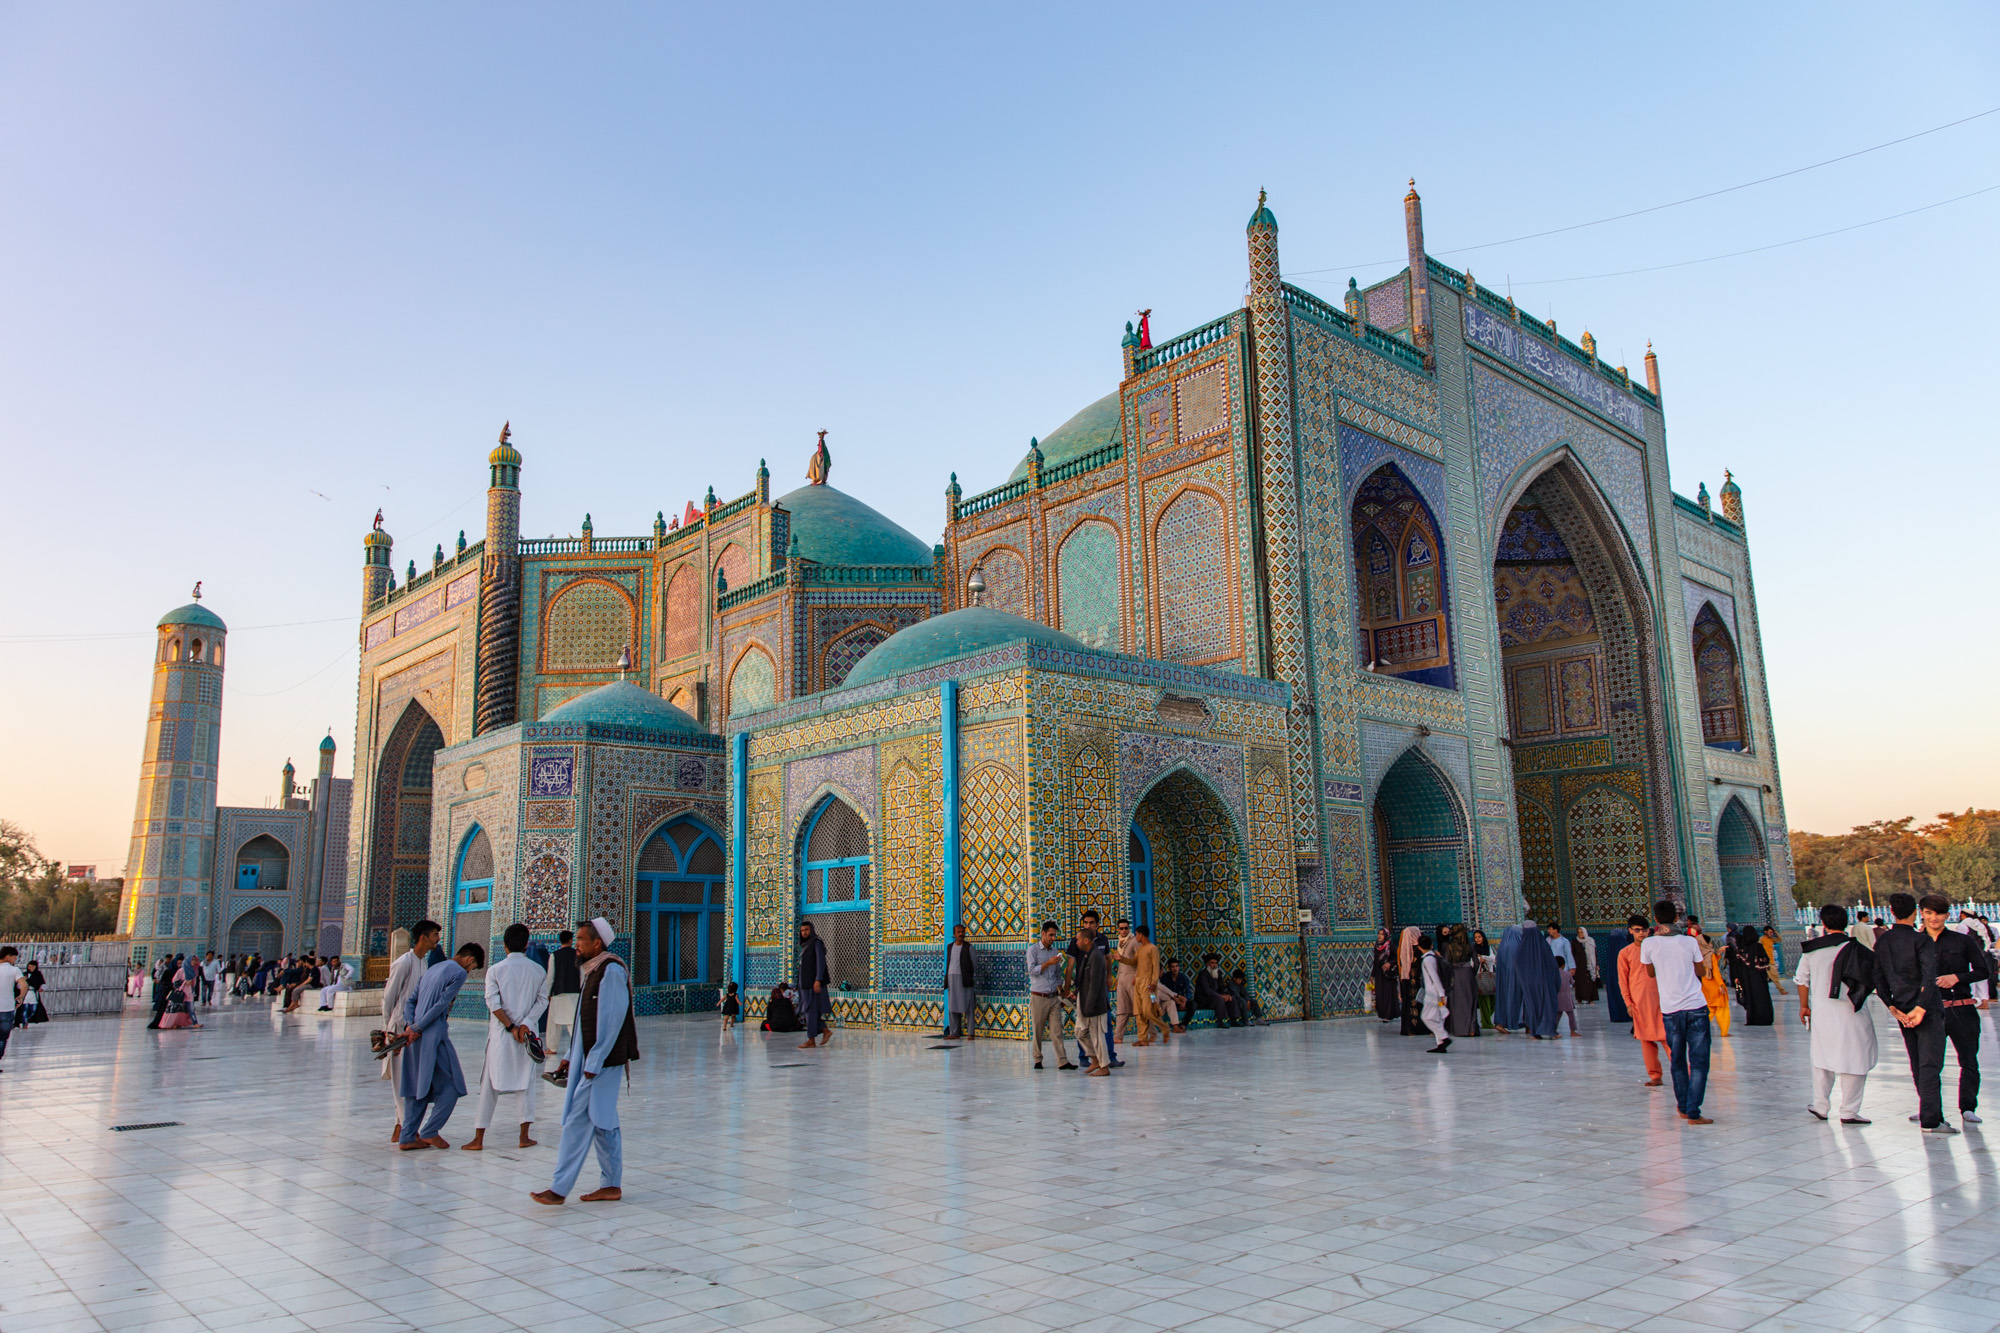 Hazrat-Ali-Shrine-Mazar-3.jpg